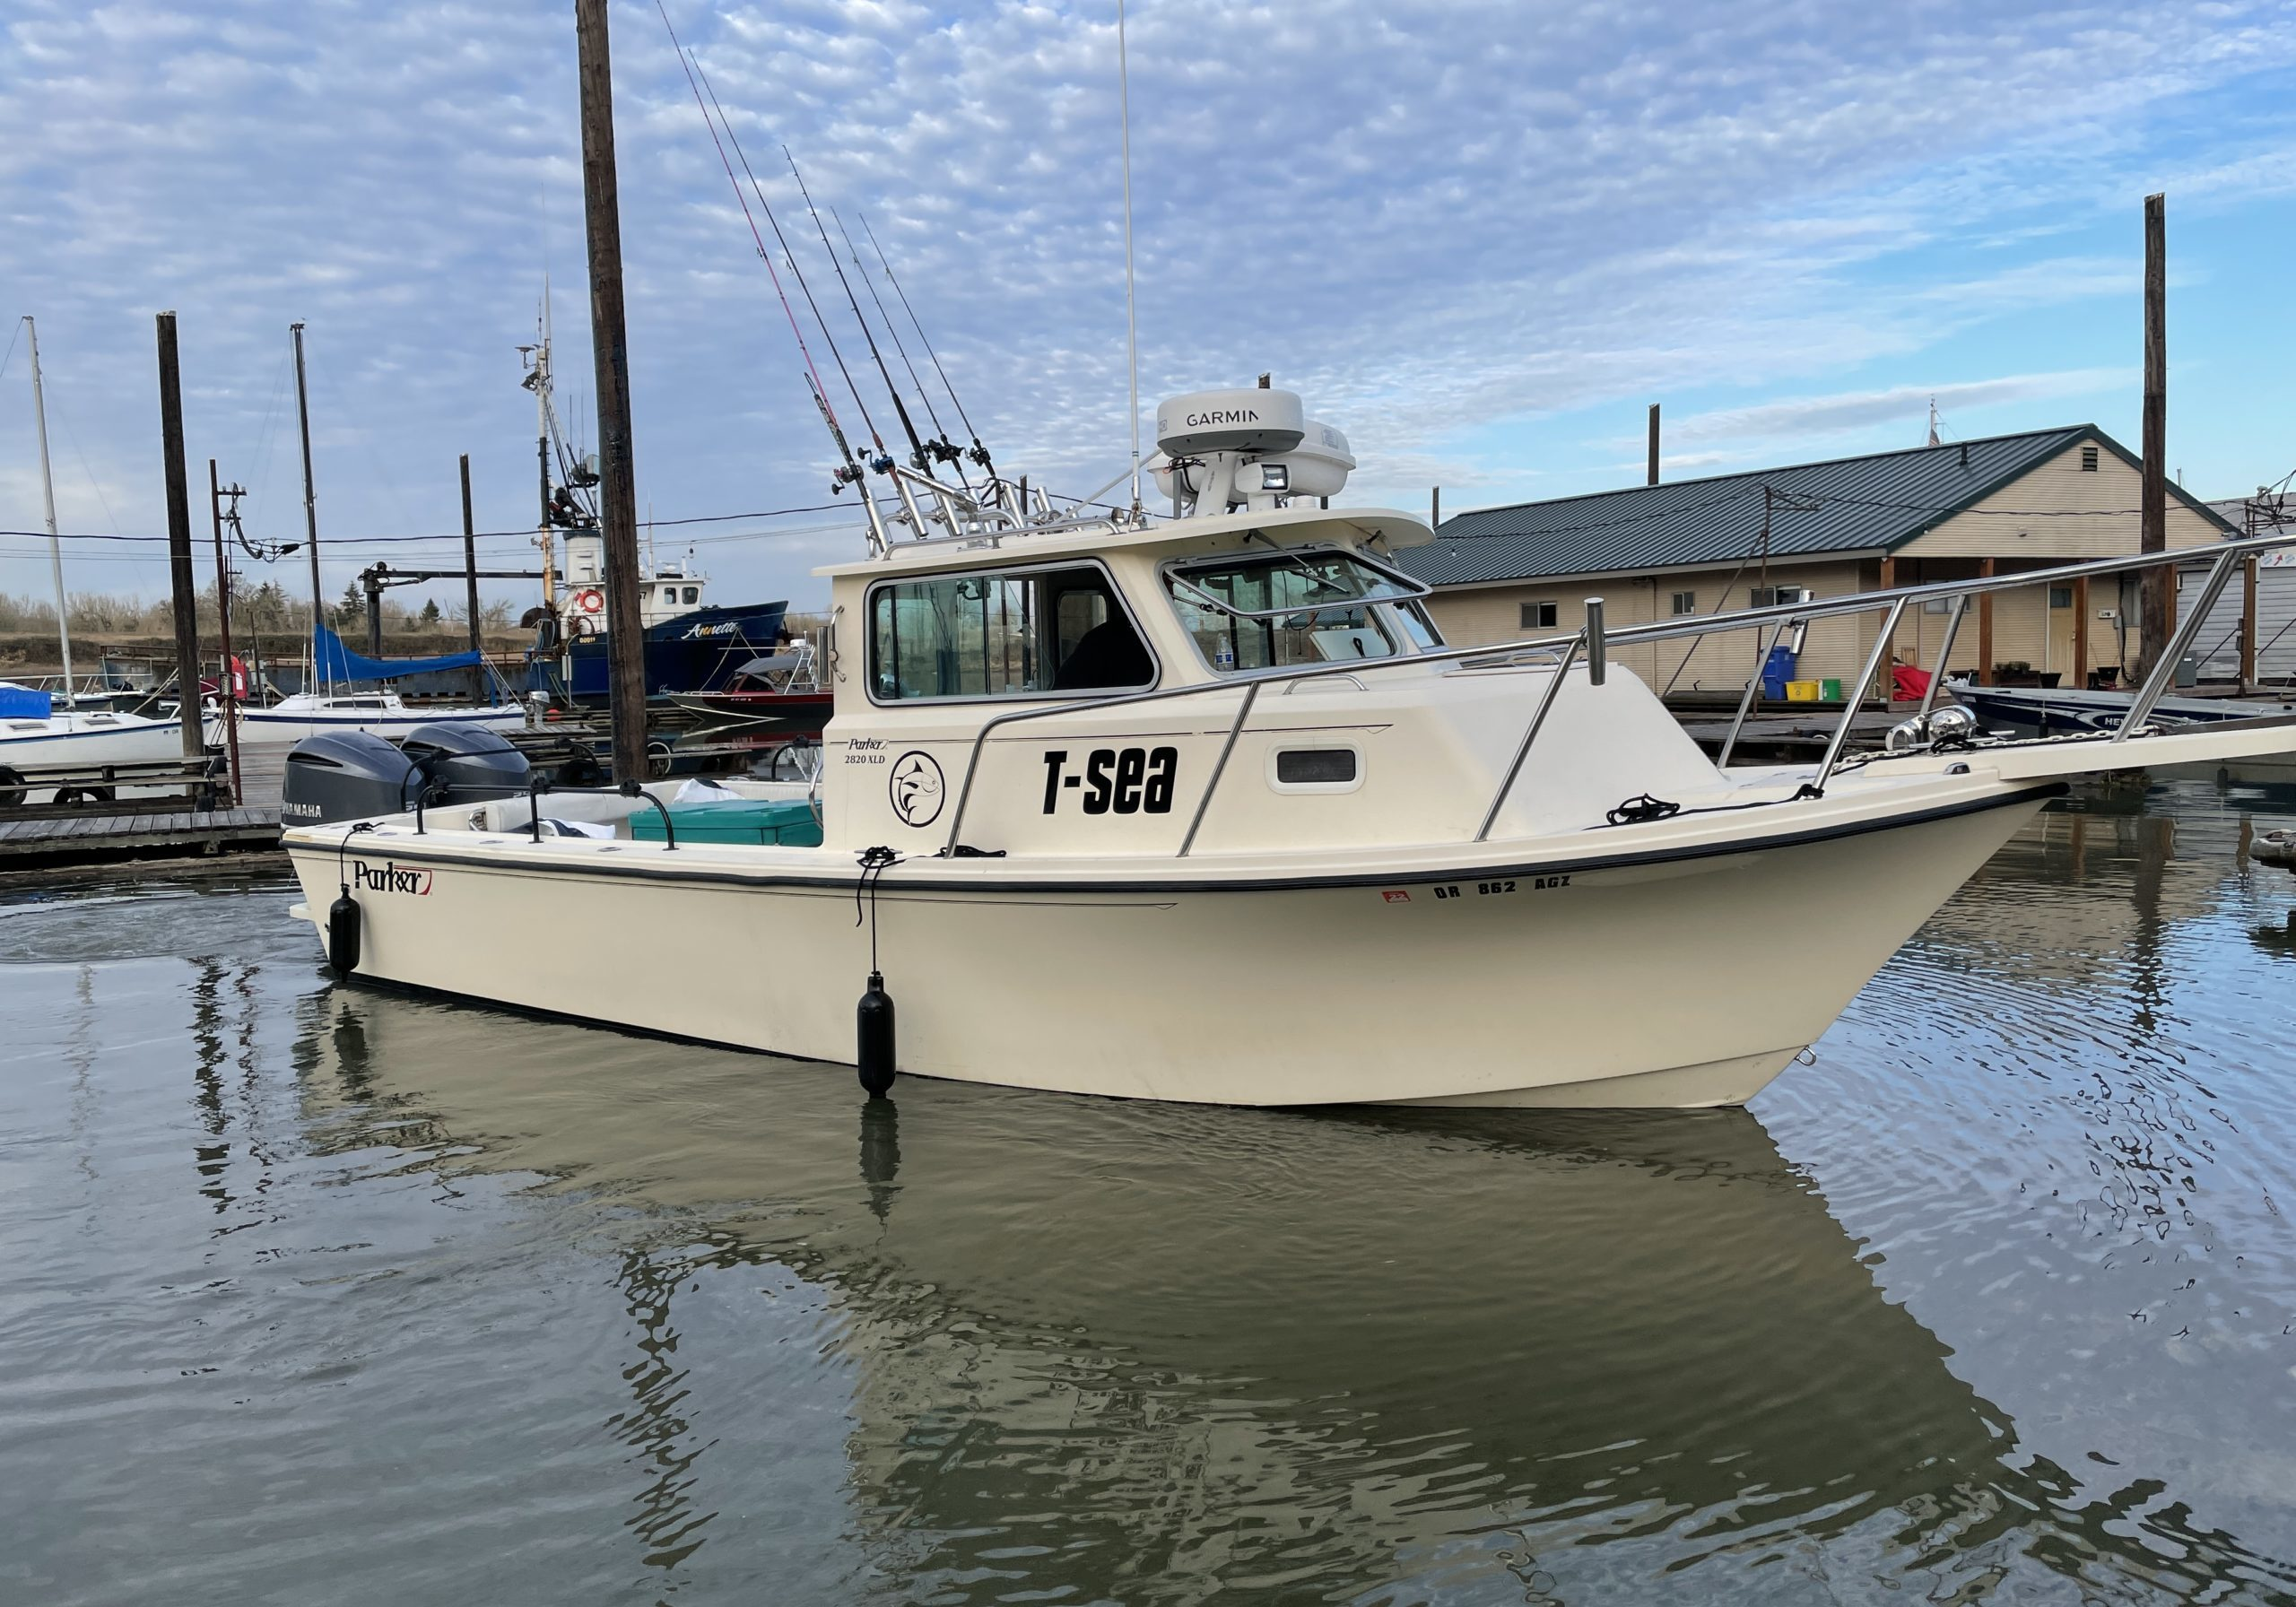 T-Sea Charters Maiden Voyage 2:28:21 21